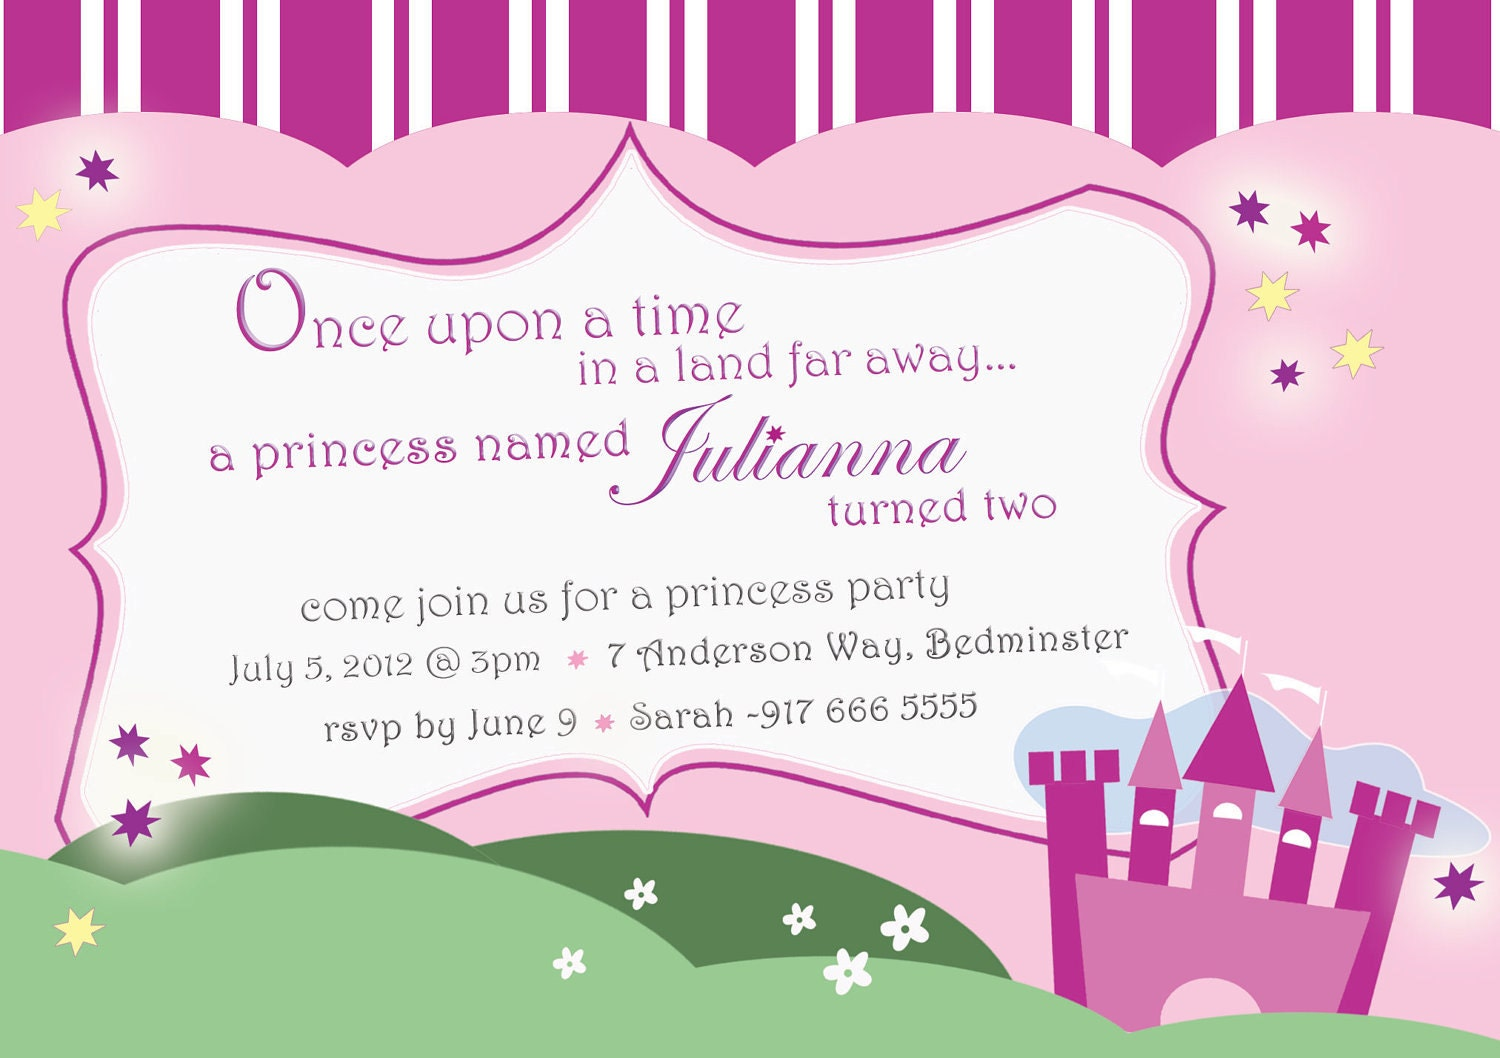 Gymnastic Party Invites with good invitations design